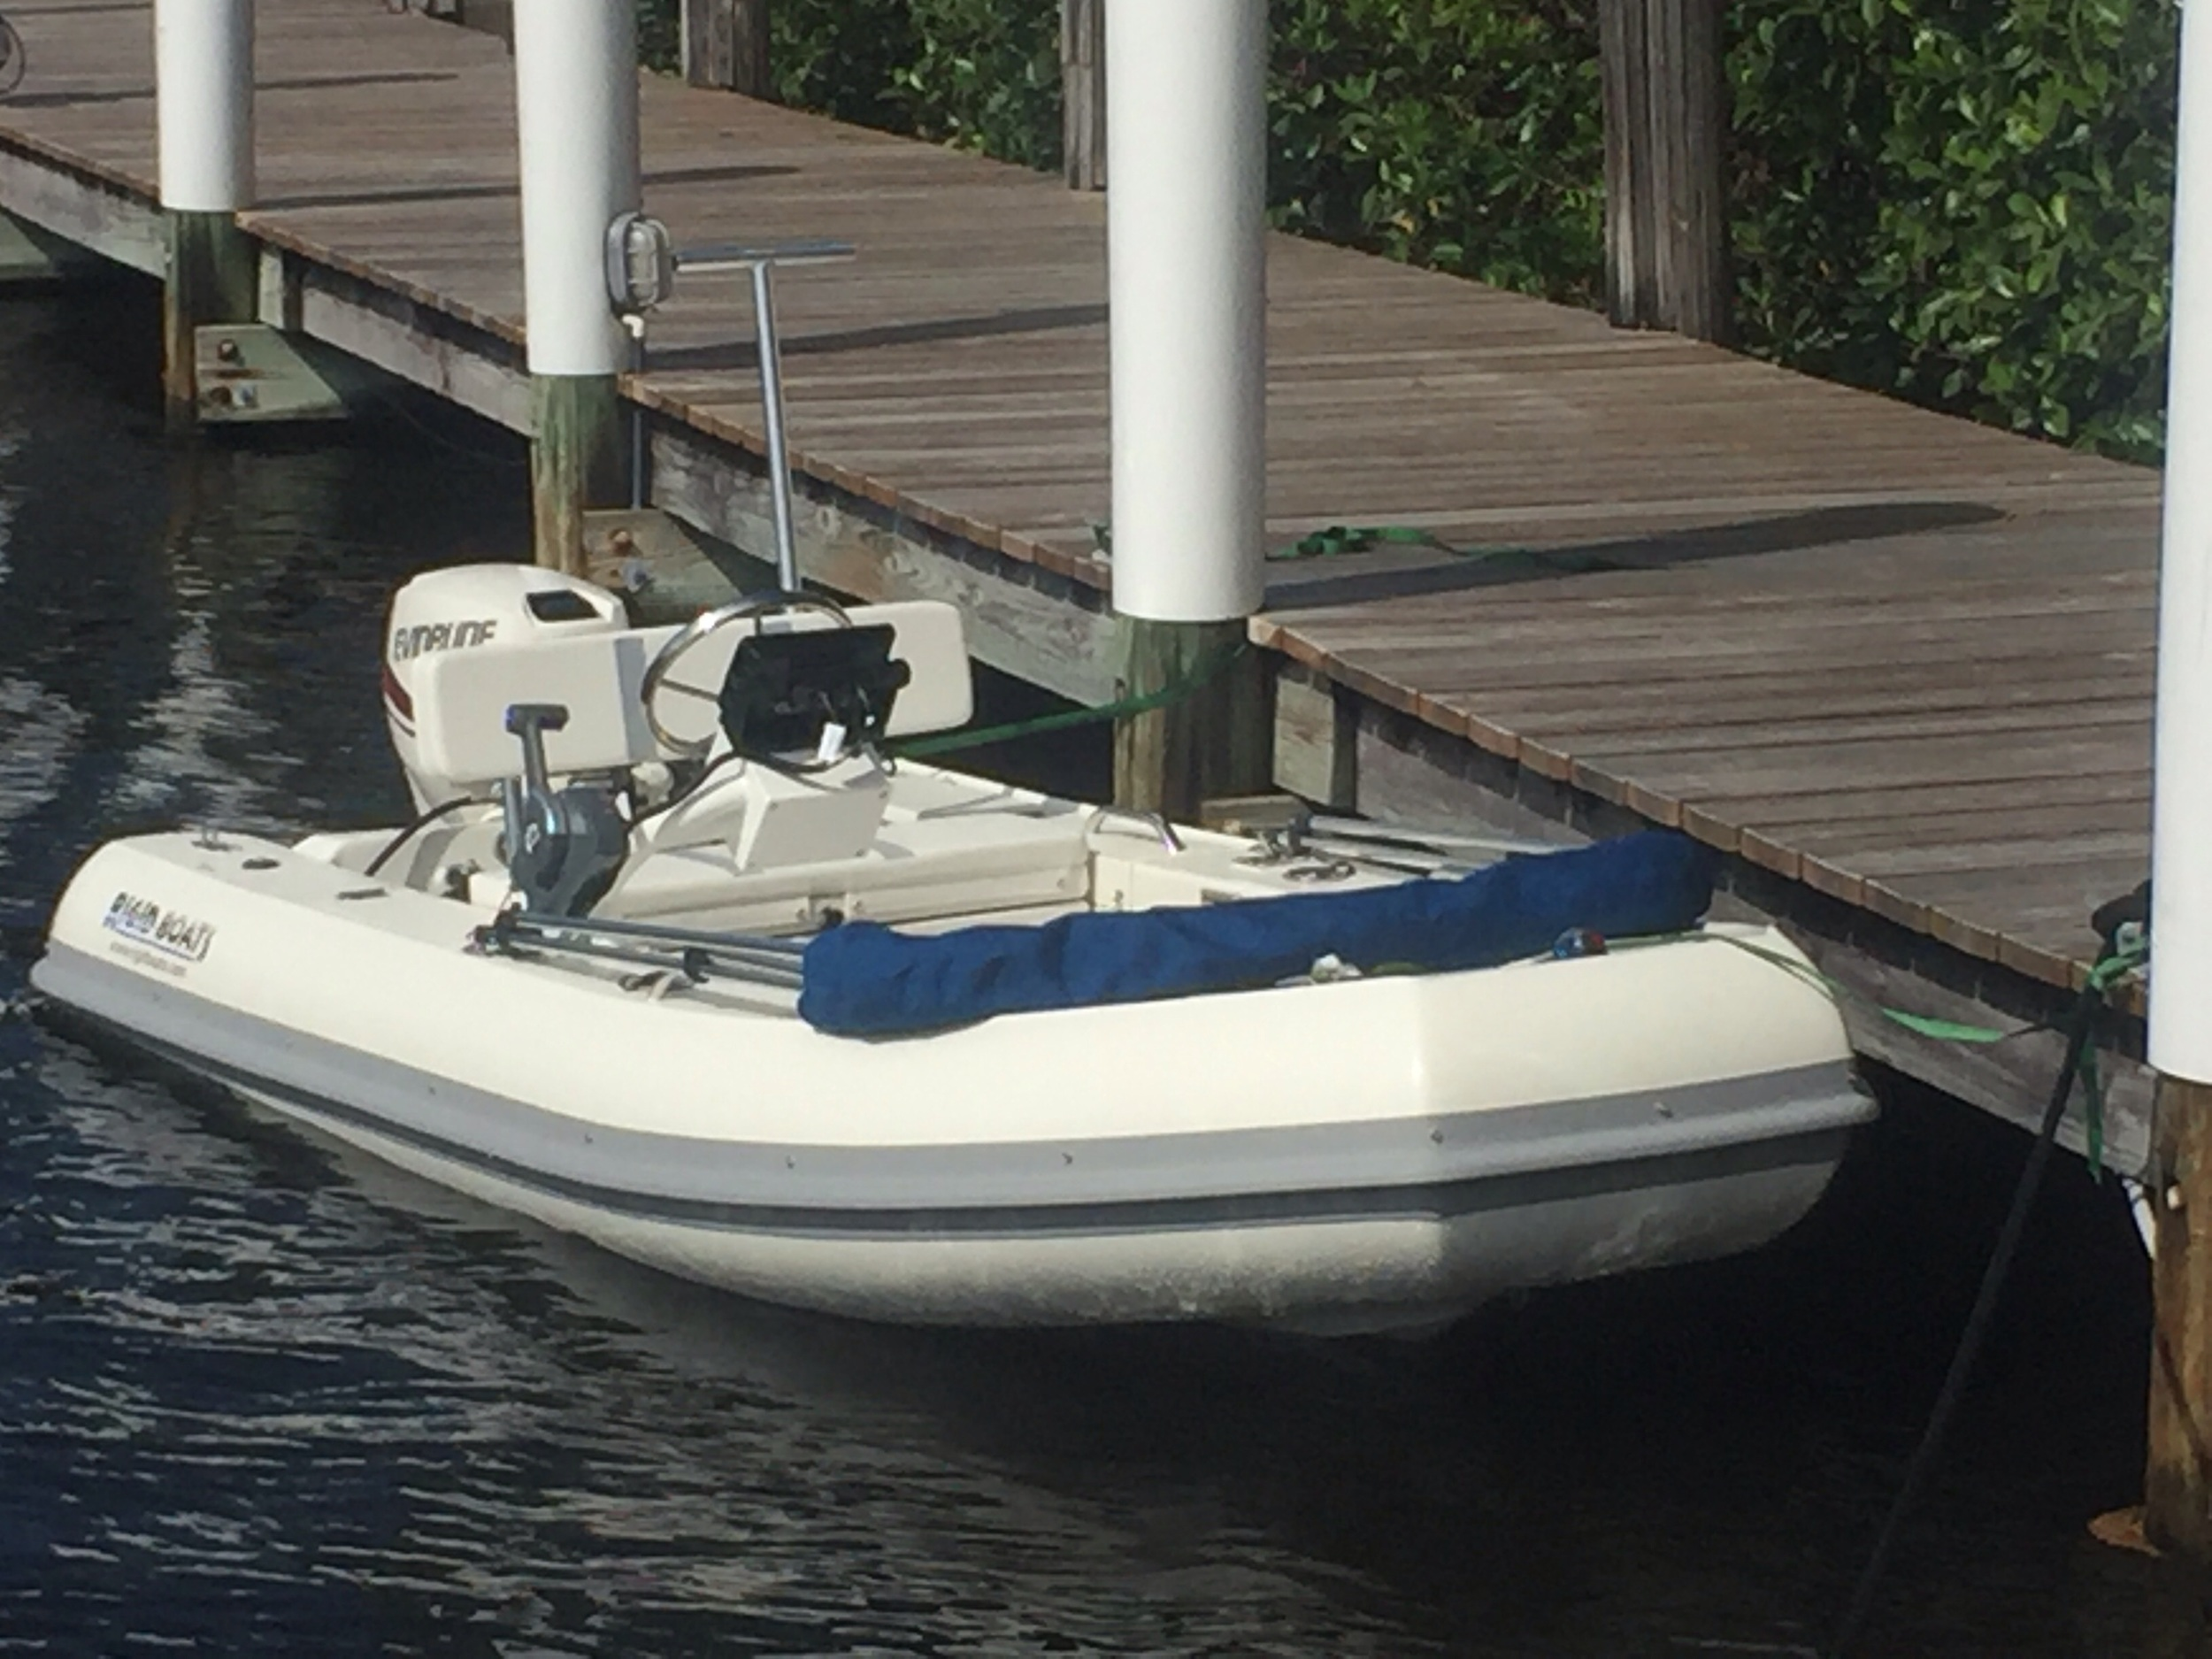 Rigid Boat's 12 foot sport tender